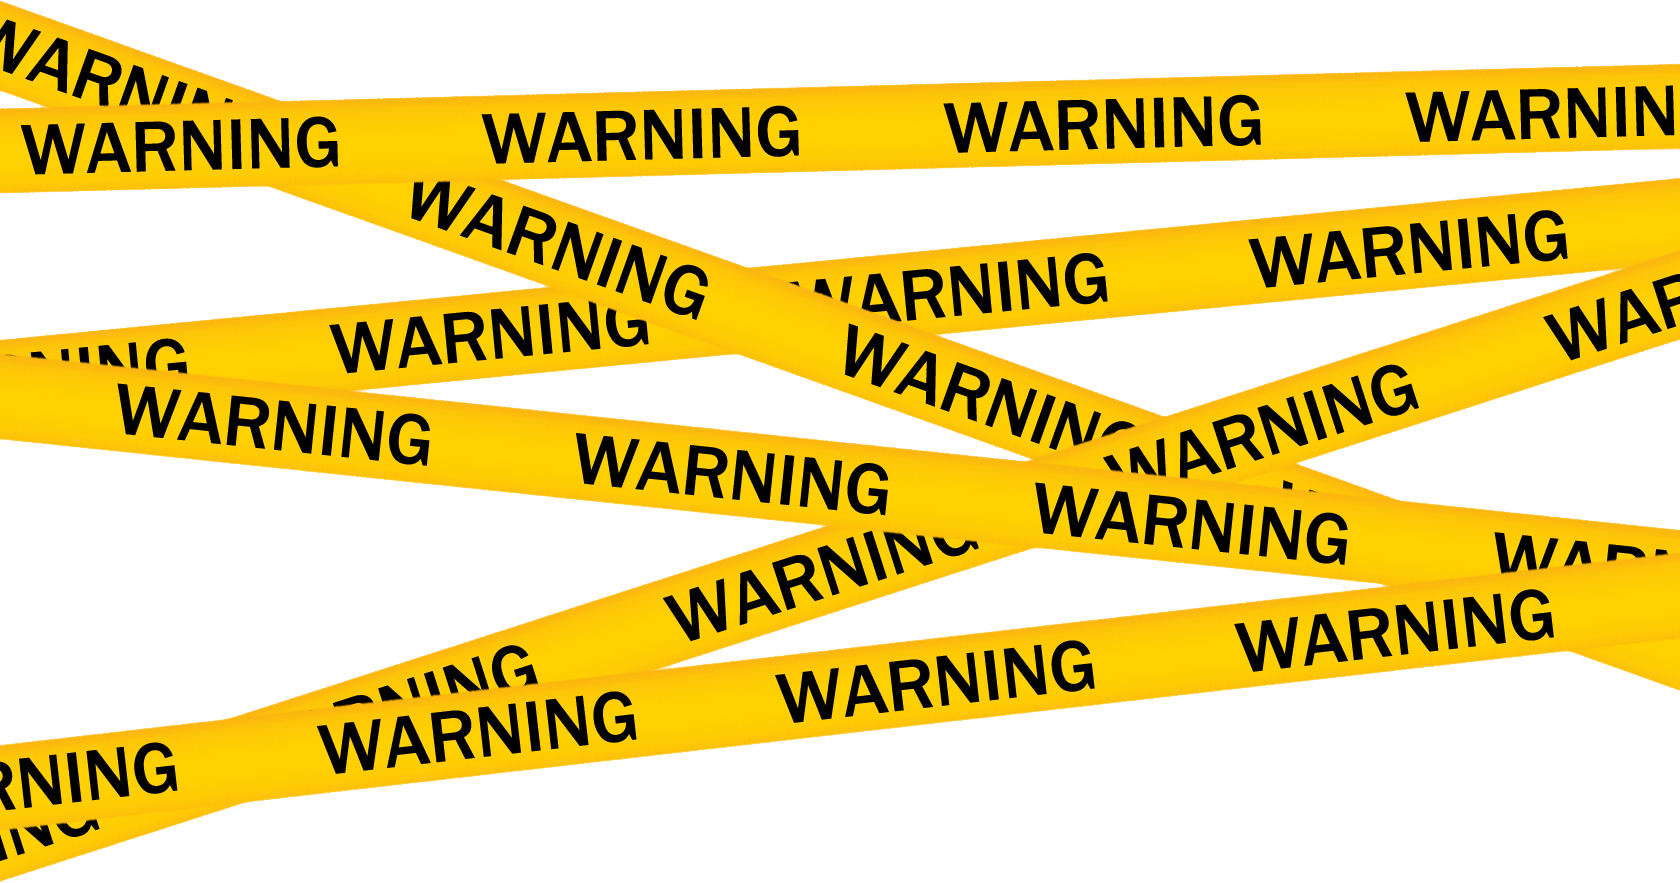 PNG images, PNGs, Police tape, Crime scene, warning (29).png.